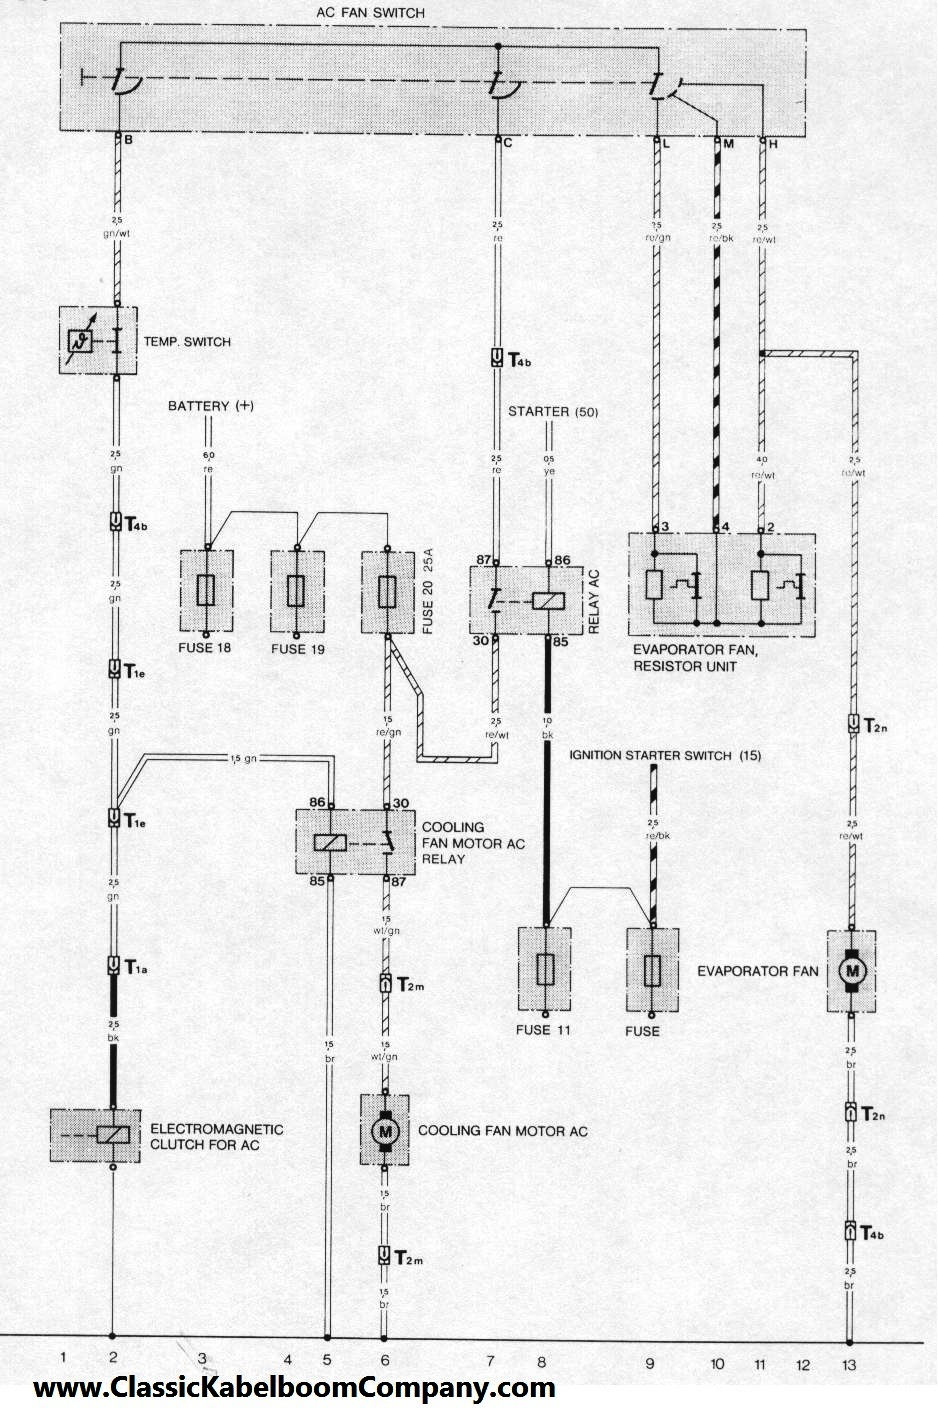 1974 Porsche 911 Wiring Diagram : 31 Wiring Diagram Images